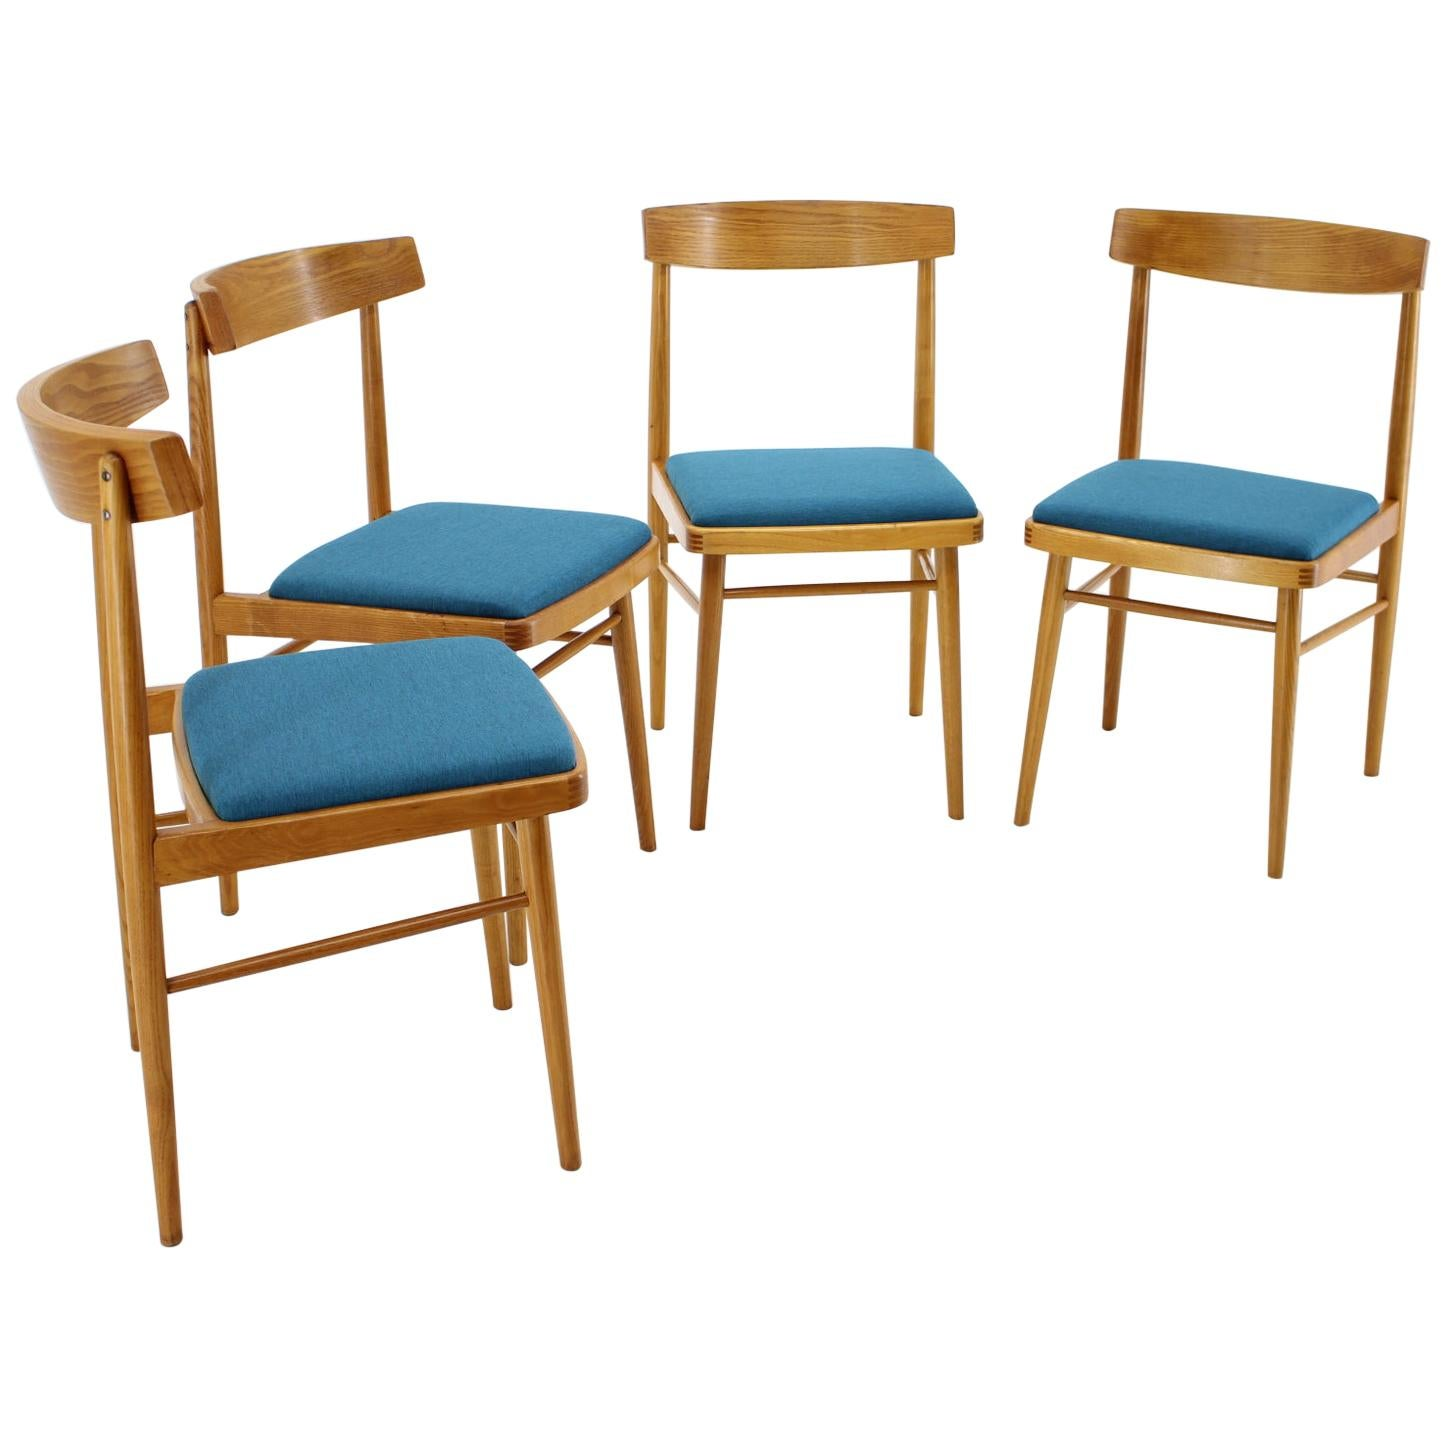 Set of Four Dining Chairs/ Thon 'Thonet', 1970s